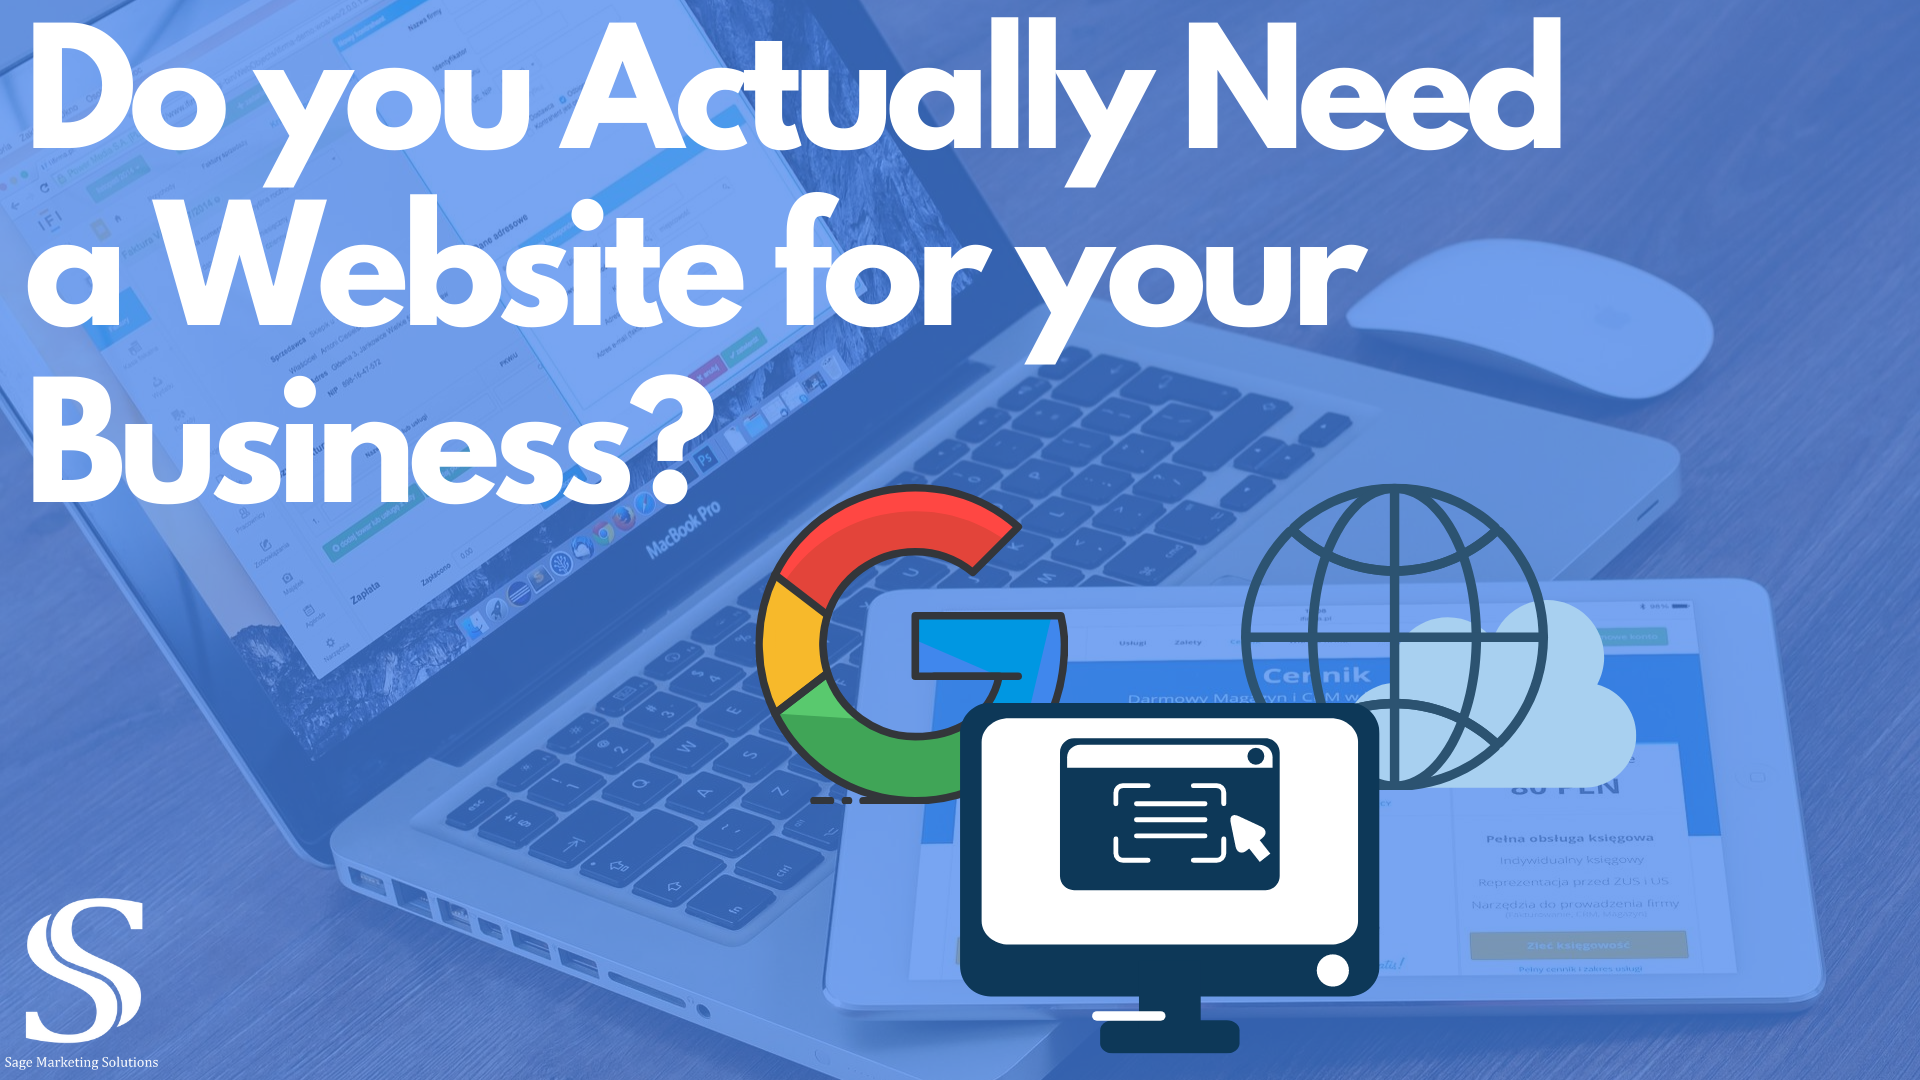 Does My Business Need a Website? Is a Company Website Necessary?